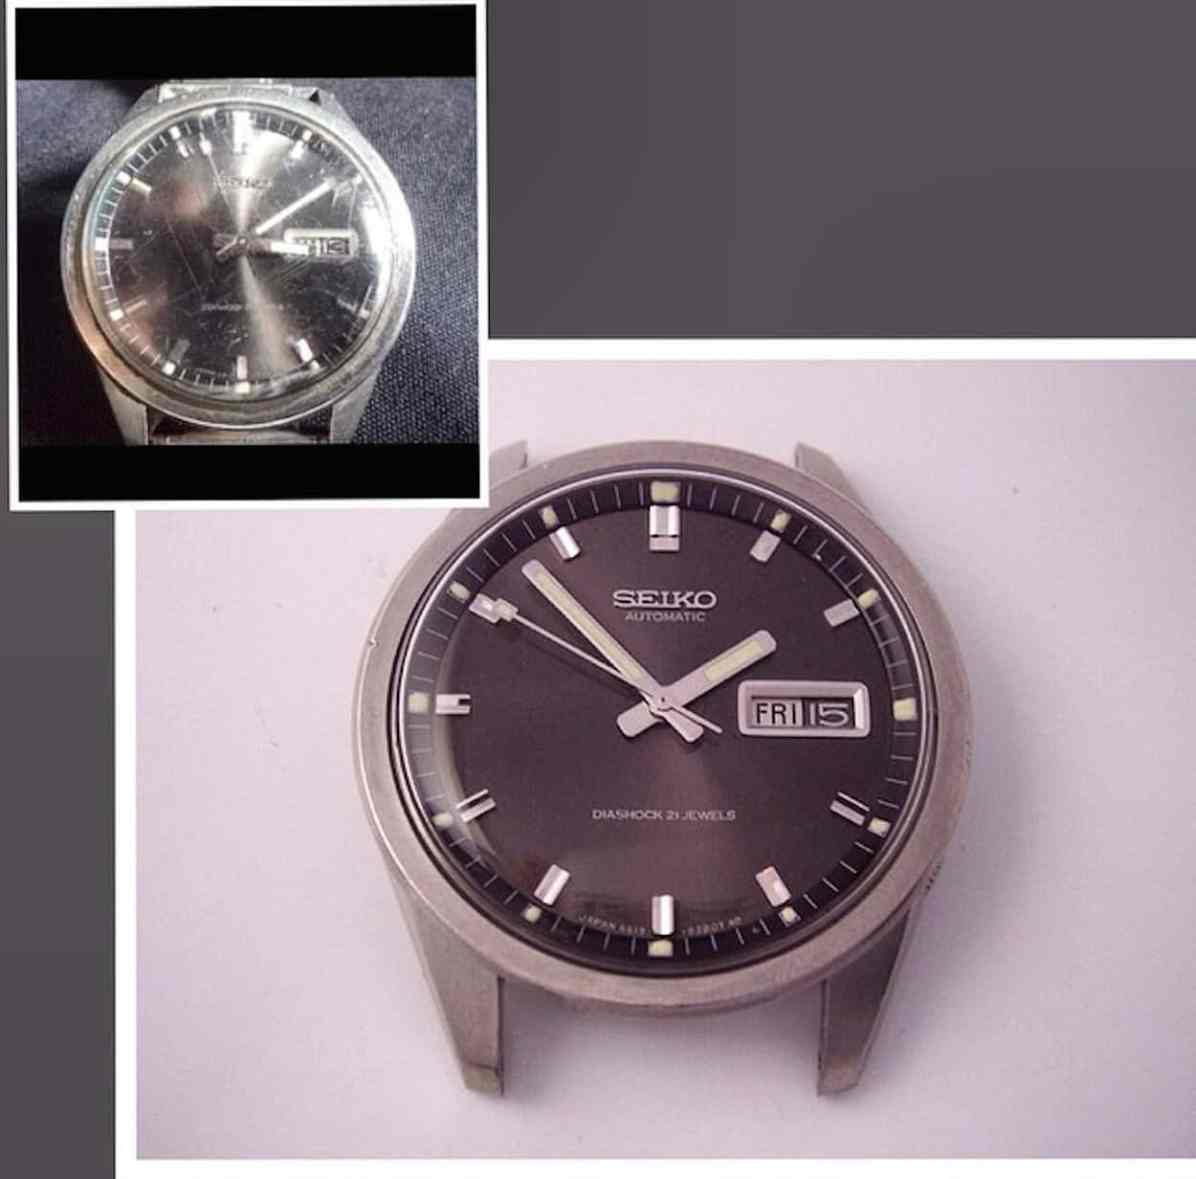 Seiko Sportsmatic before and after